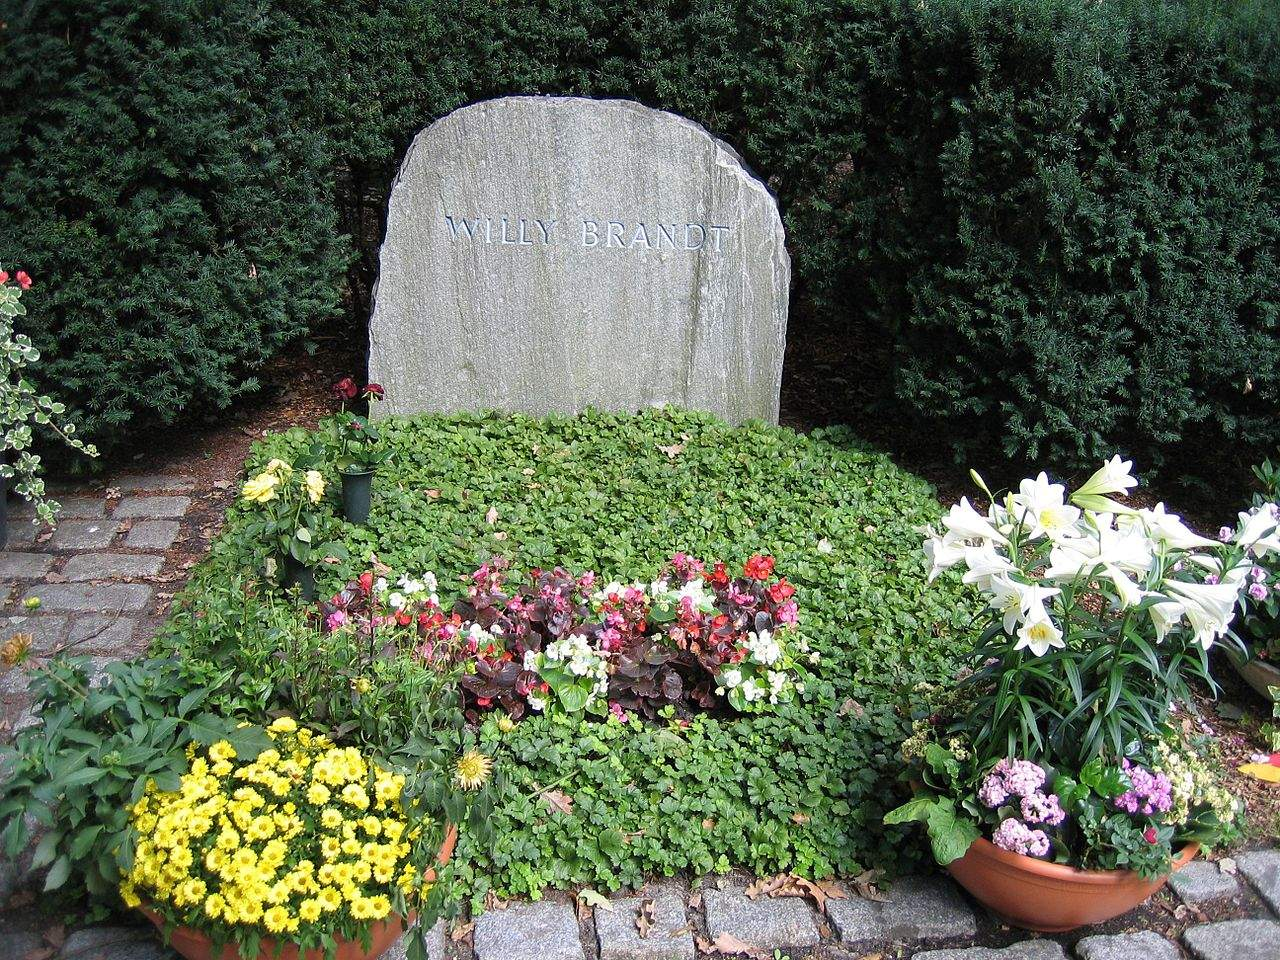 1280px Willy brandt grave